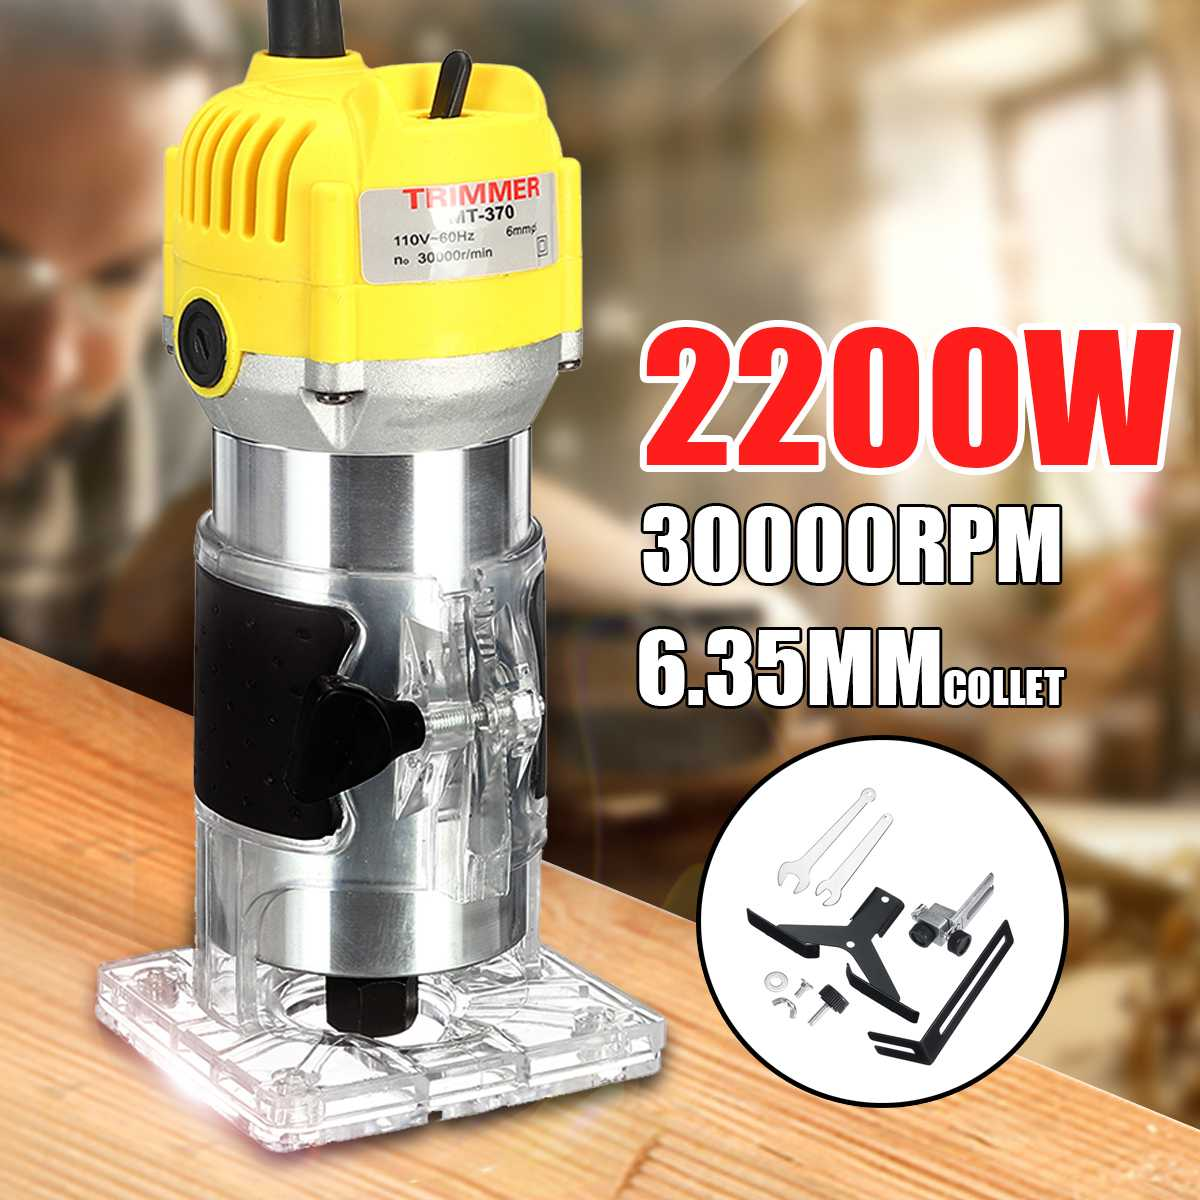 110V 220V 2200W Electric Hand Trimmer 6.35mm 1/4 Wood Router Bits Trimming Cutting Carving Machine Woodworking laminator Tool110V 220V 2200W Electric Hand Trimmer 6.35mm 1/4 Wood Router Bits Trimming Cutting Carving Machine Woodworking laminator Tool